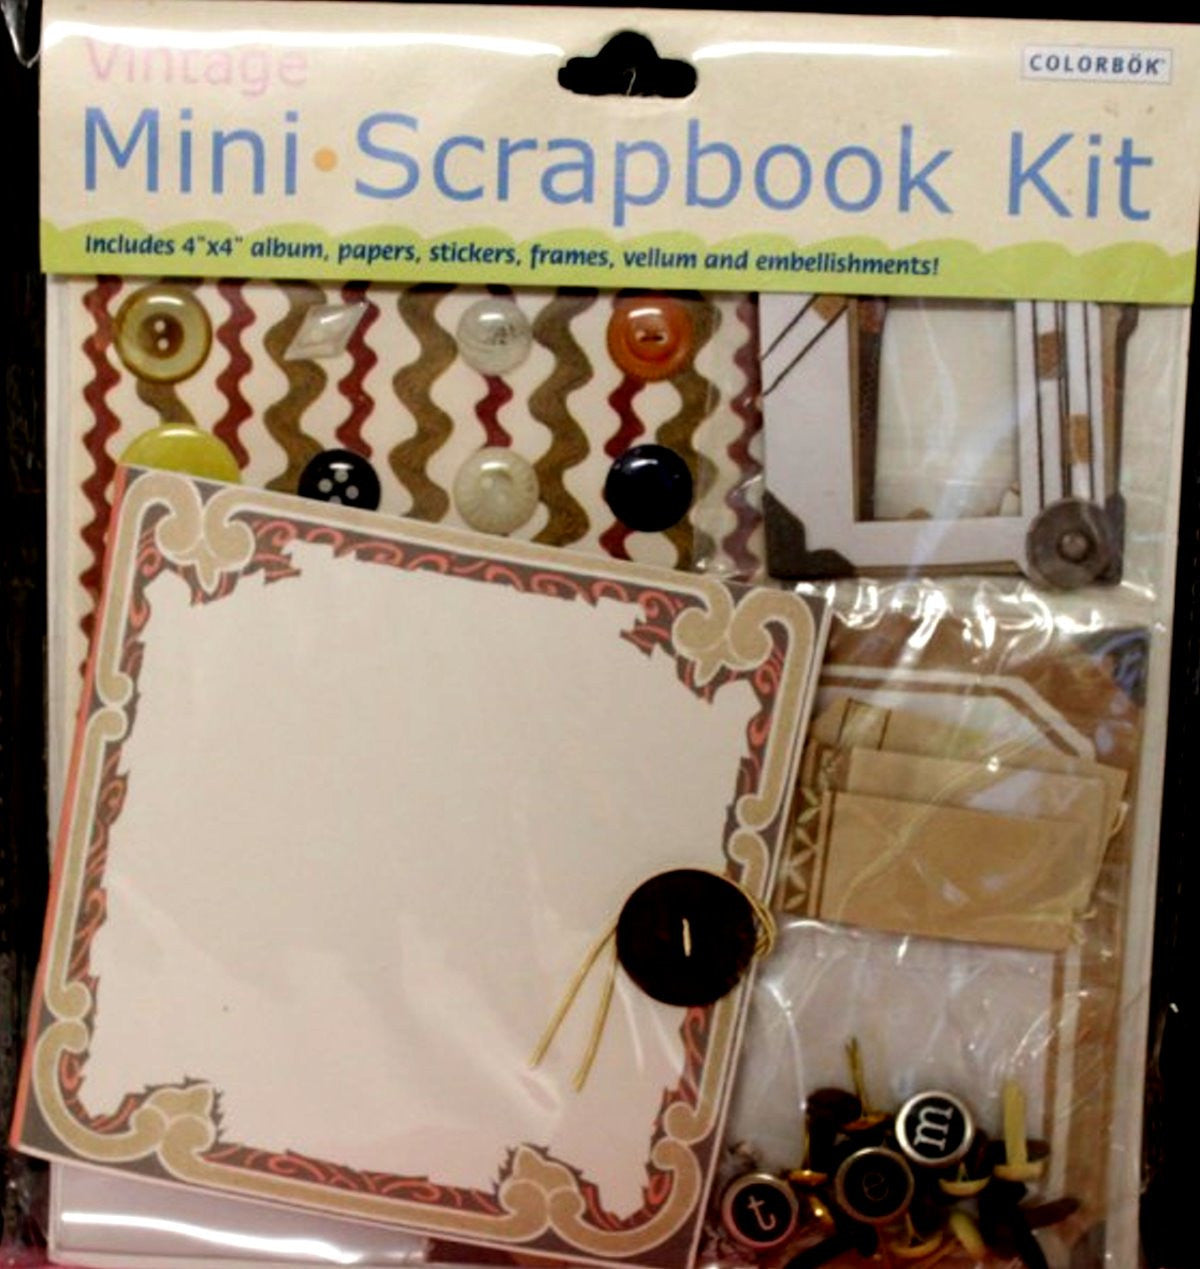 Colorbok Vintage Mini Scrapbook Kit - SCRAPBOOKFARE